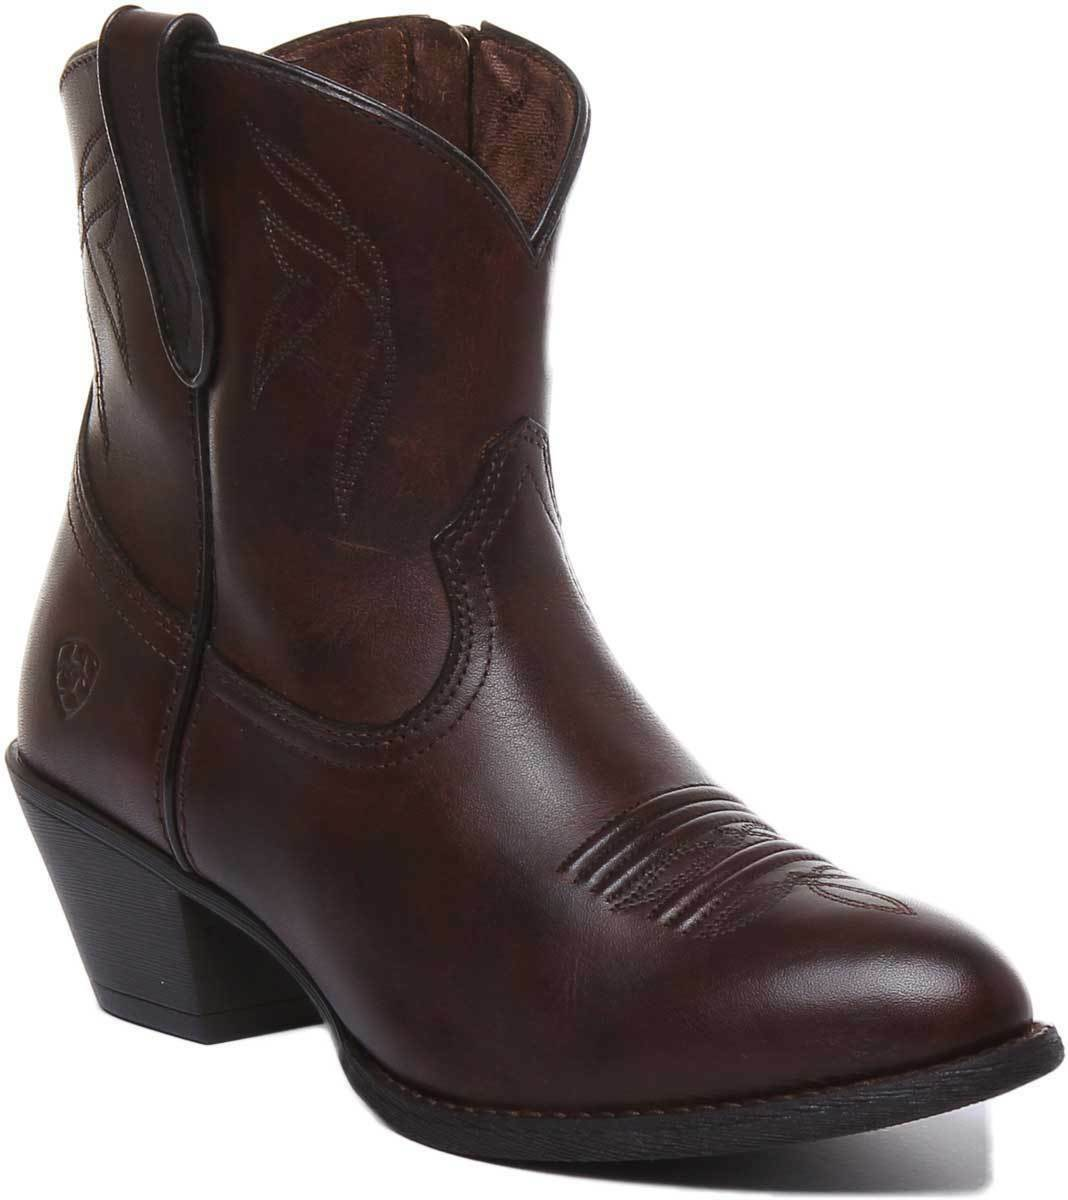 Ariat Darlin Women Leather Dark Brown Western Ankle Boots UK Size 3 - 8